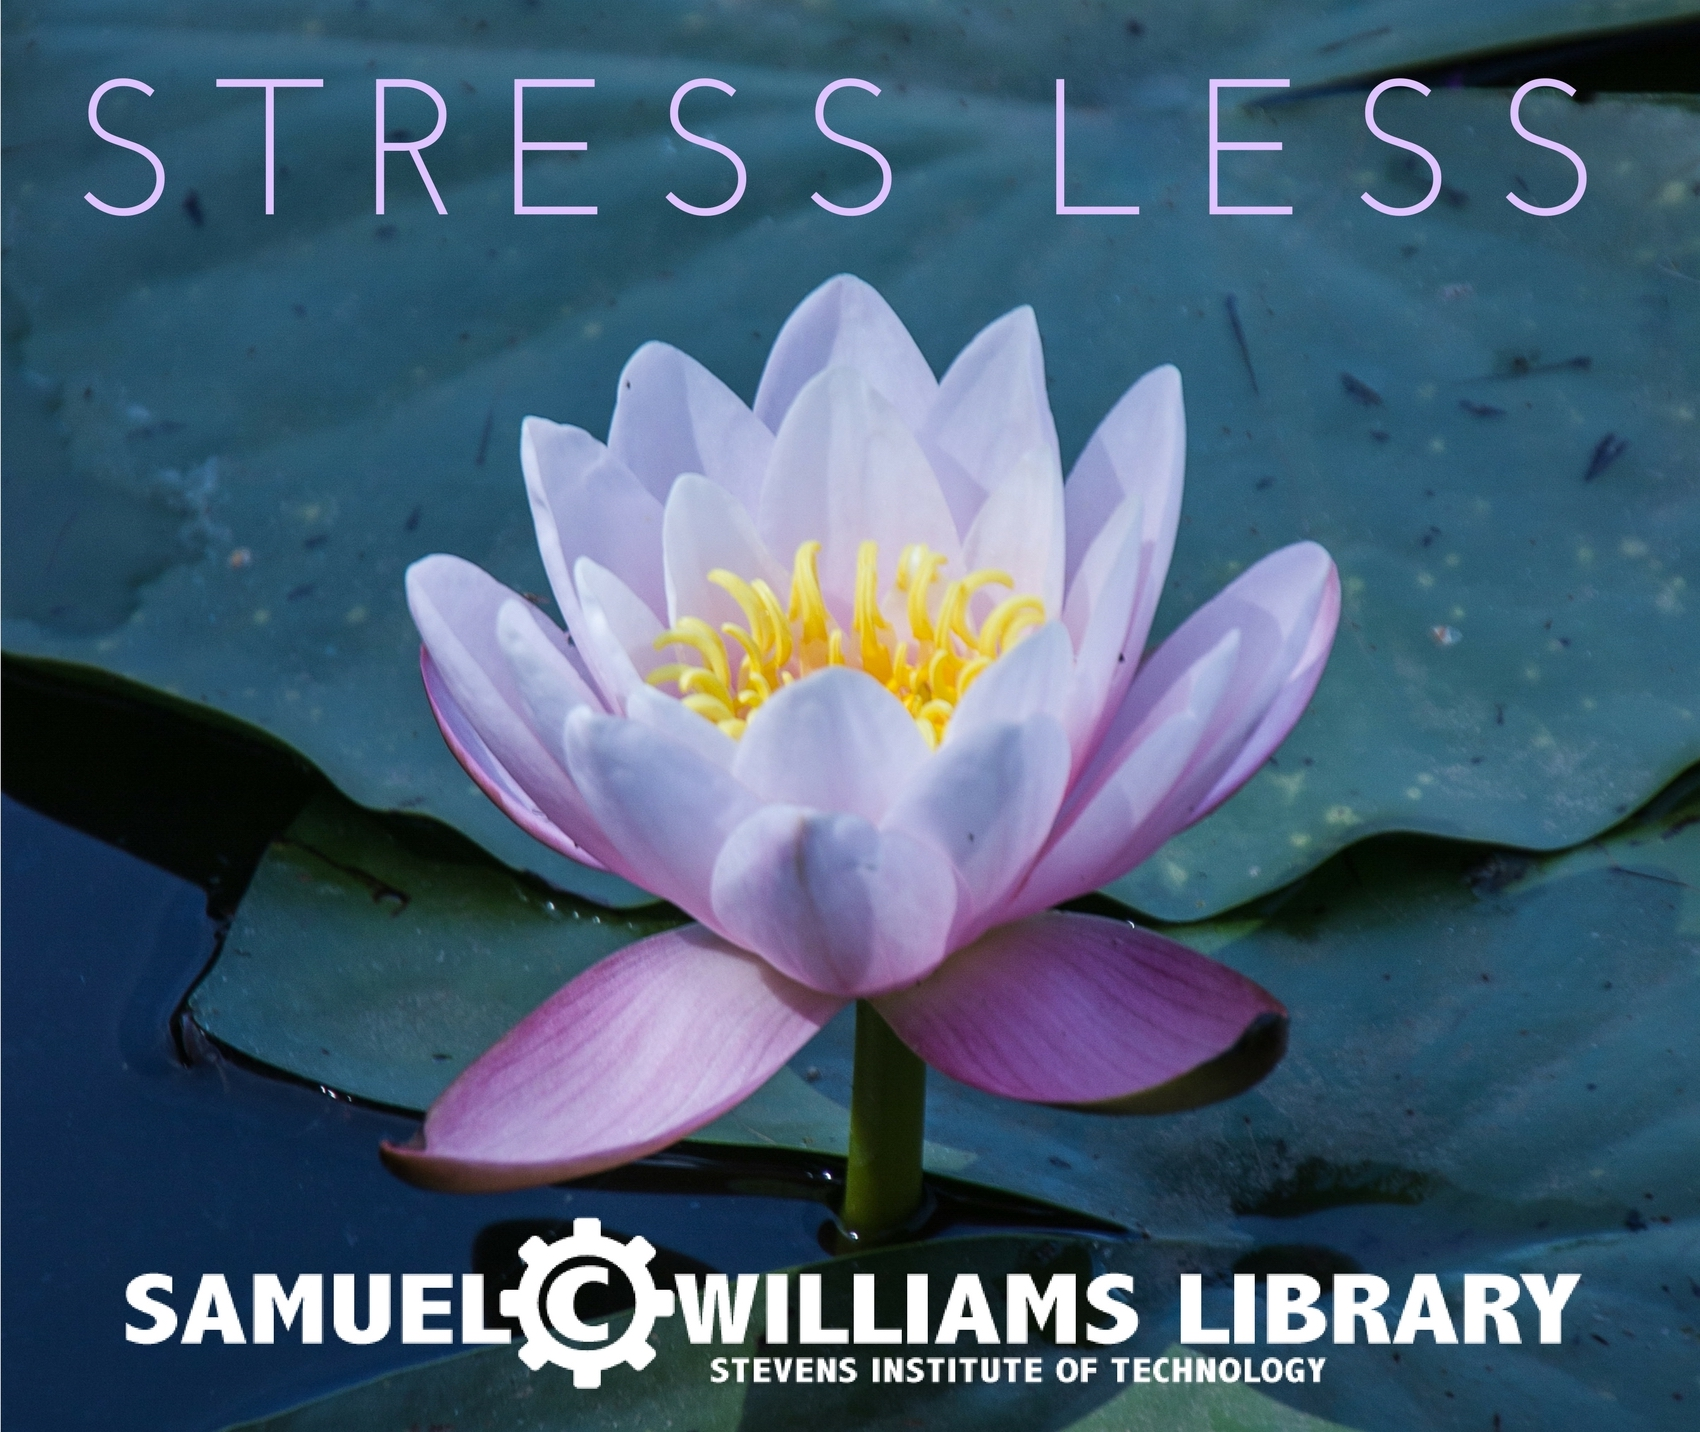 Stress Less at SCW Library